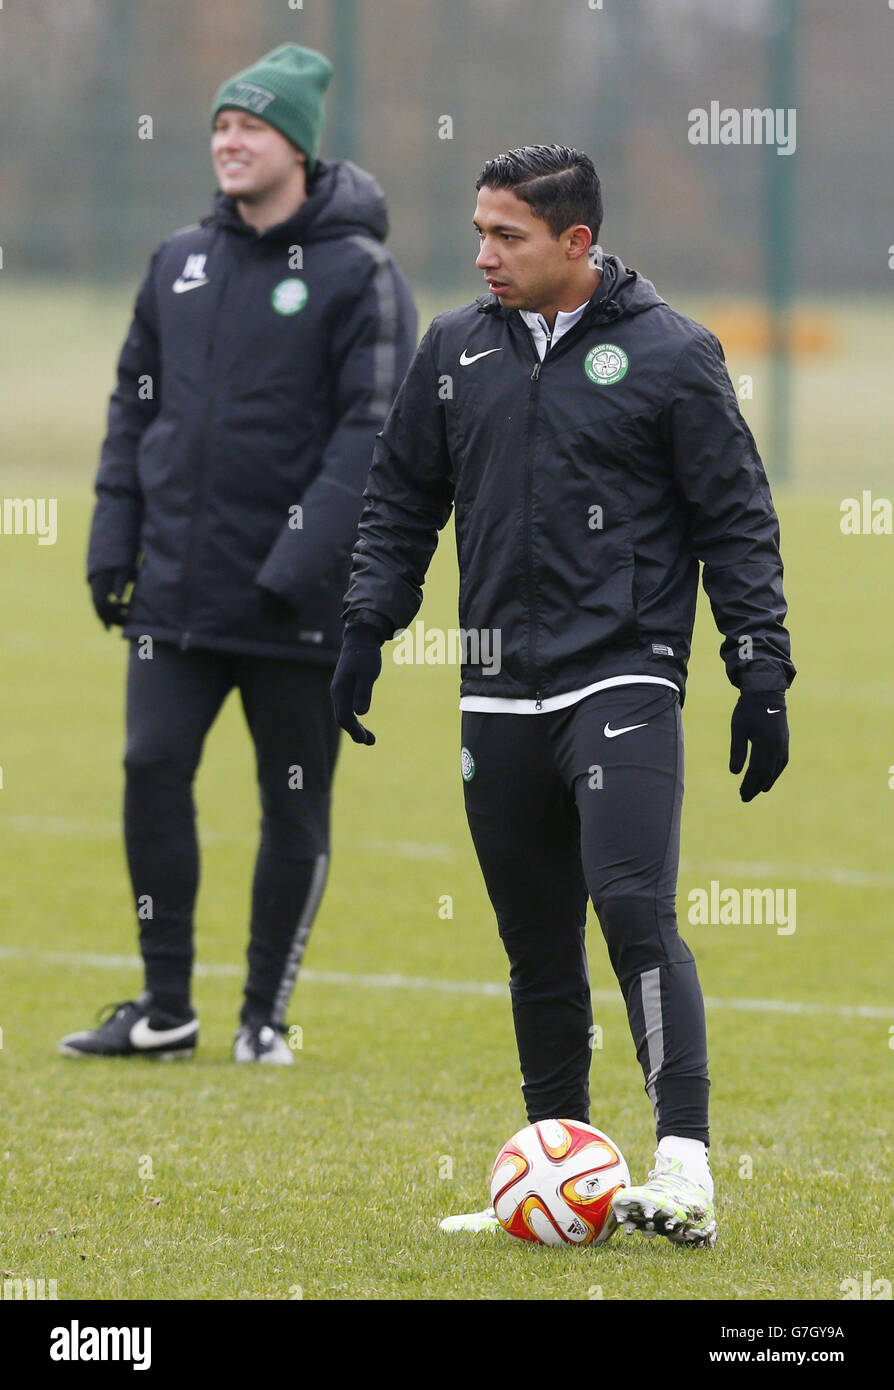 Soccer - UEFA Europa League - Group D - Celtic v FC Salzburg - Celtic Training Session - Lennoxtown Training Centre Stock Photo